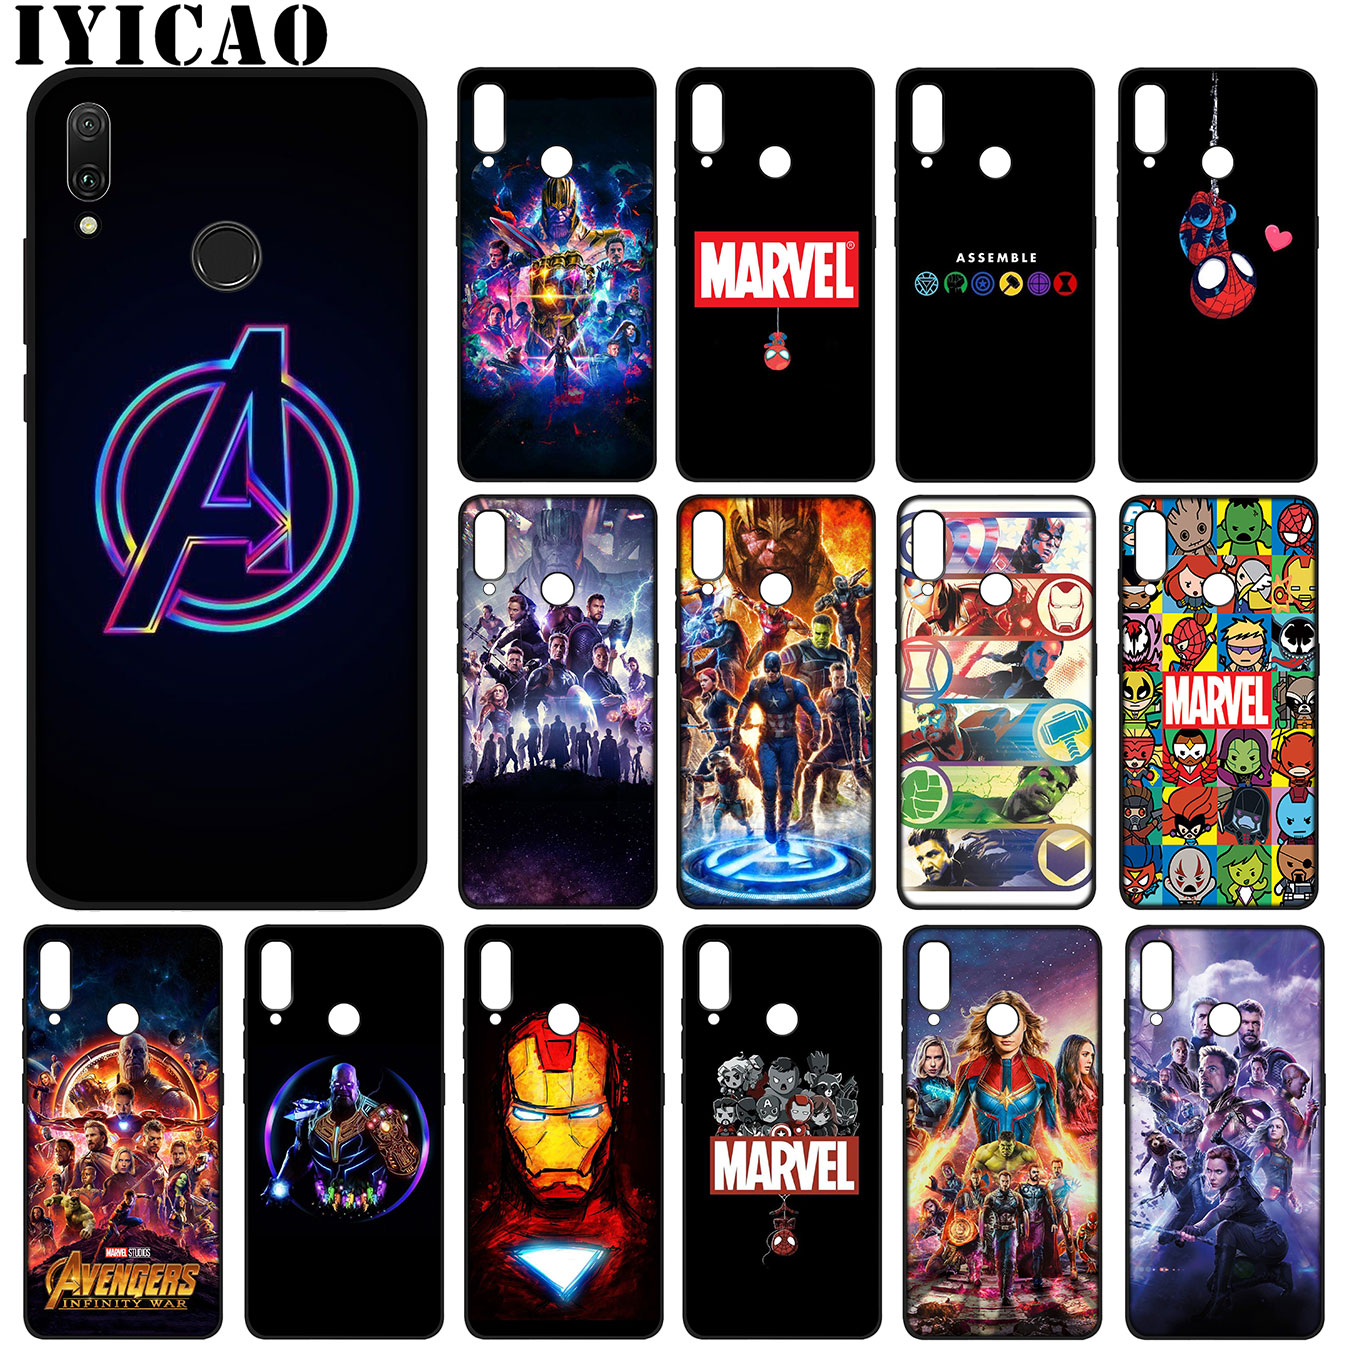 Avengers Endgame Marvel Iron Man Thanos Soft Silicone Case for Huawei Y9 Prime 2019 Cover Honor 20 8X 8 9 9X 10 Lite 7C 7A Pro image